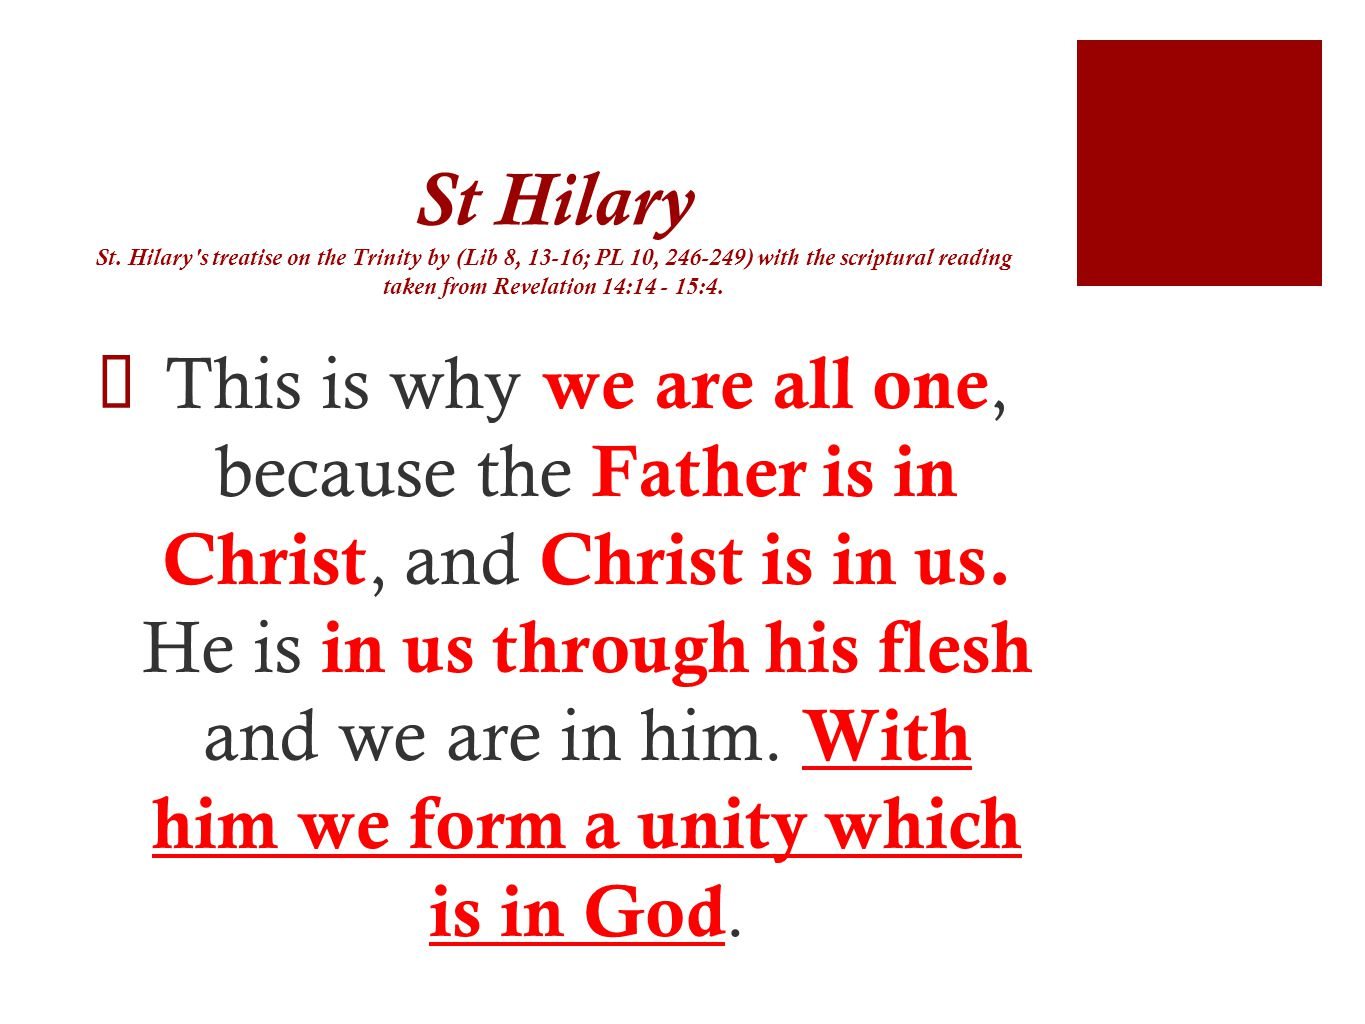 St Hilary St. Hilary s treatise on the Trinity by (Lib 8, 13-16; PL 10, 246-249) with the scriptural reading taken from Revelation 14:14 - 15:4.